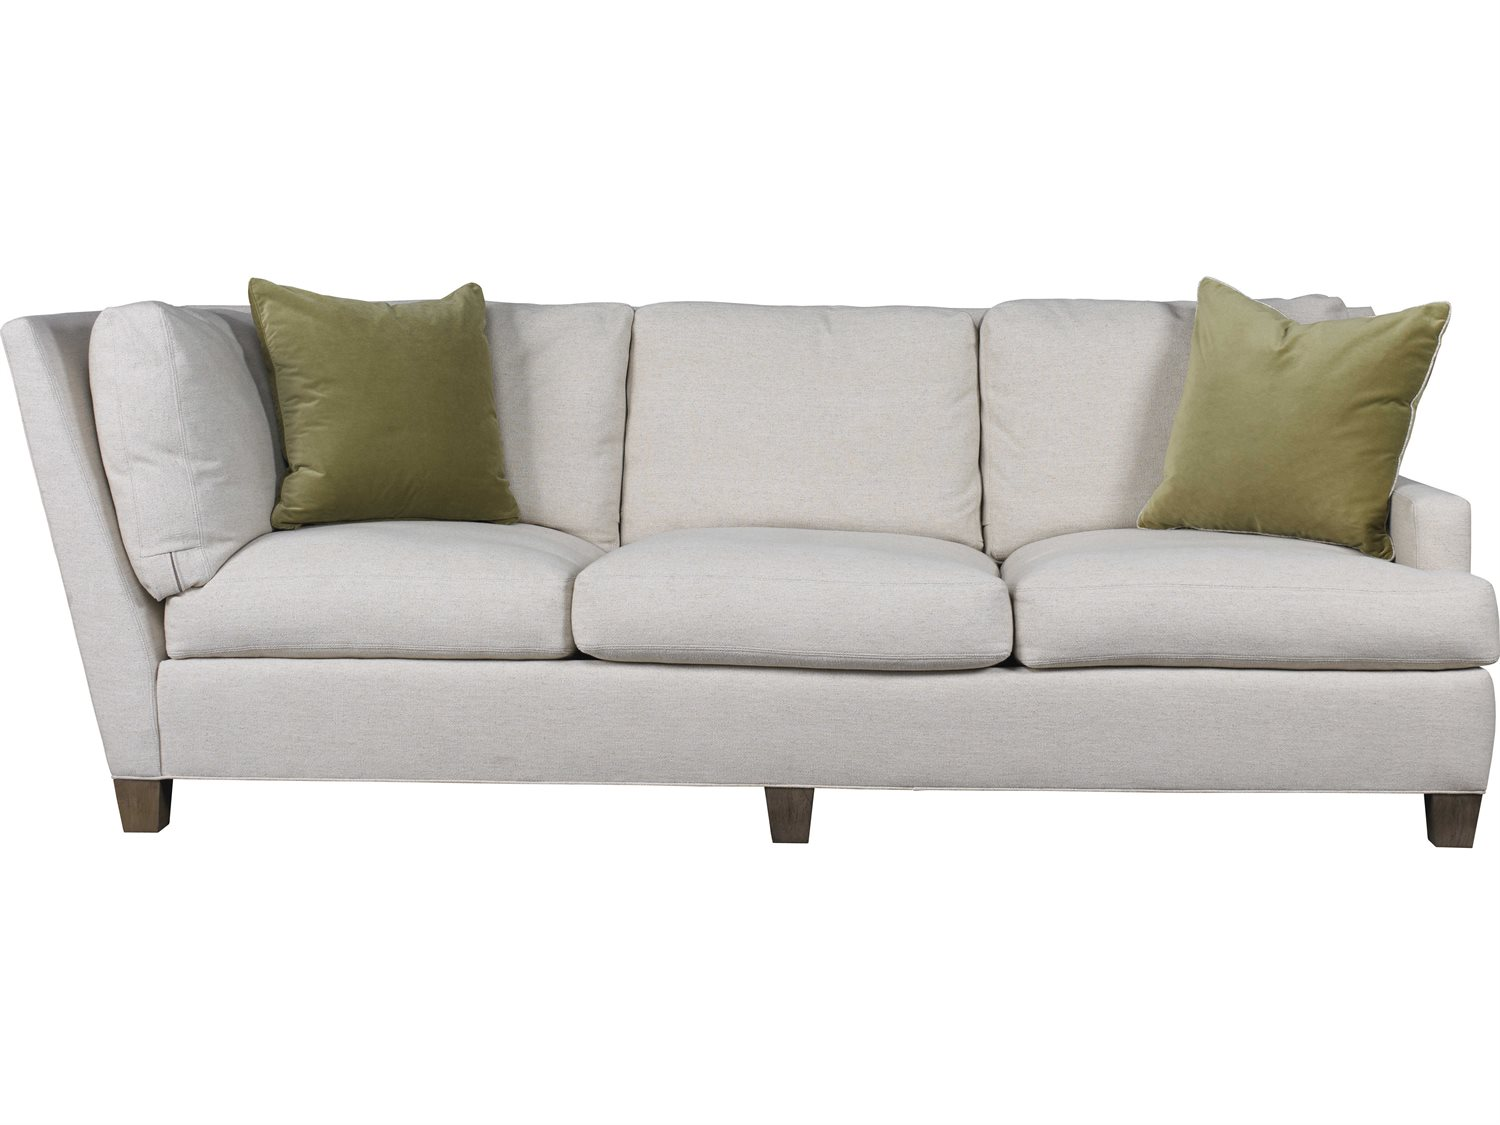 Lillian August Upholstery Right Arm Corner Sofa Couch Lnala9102rn